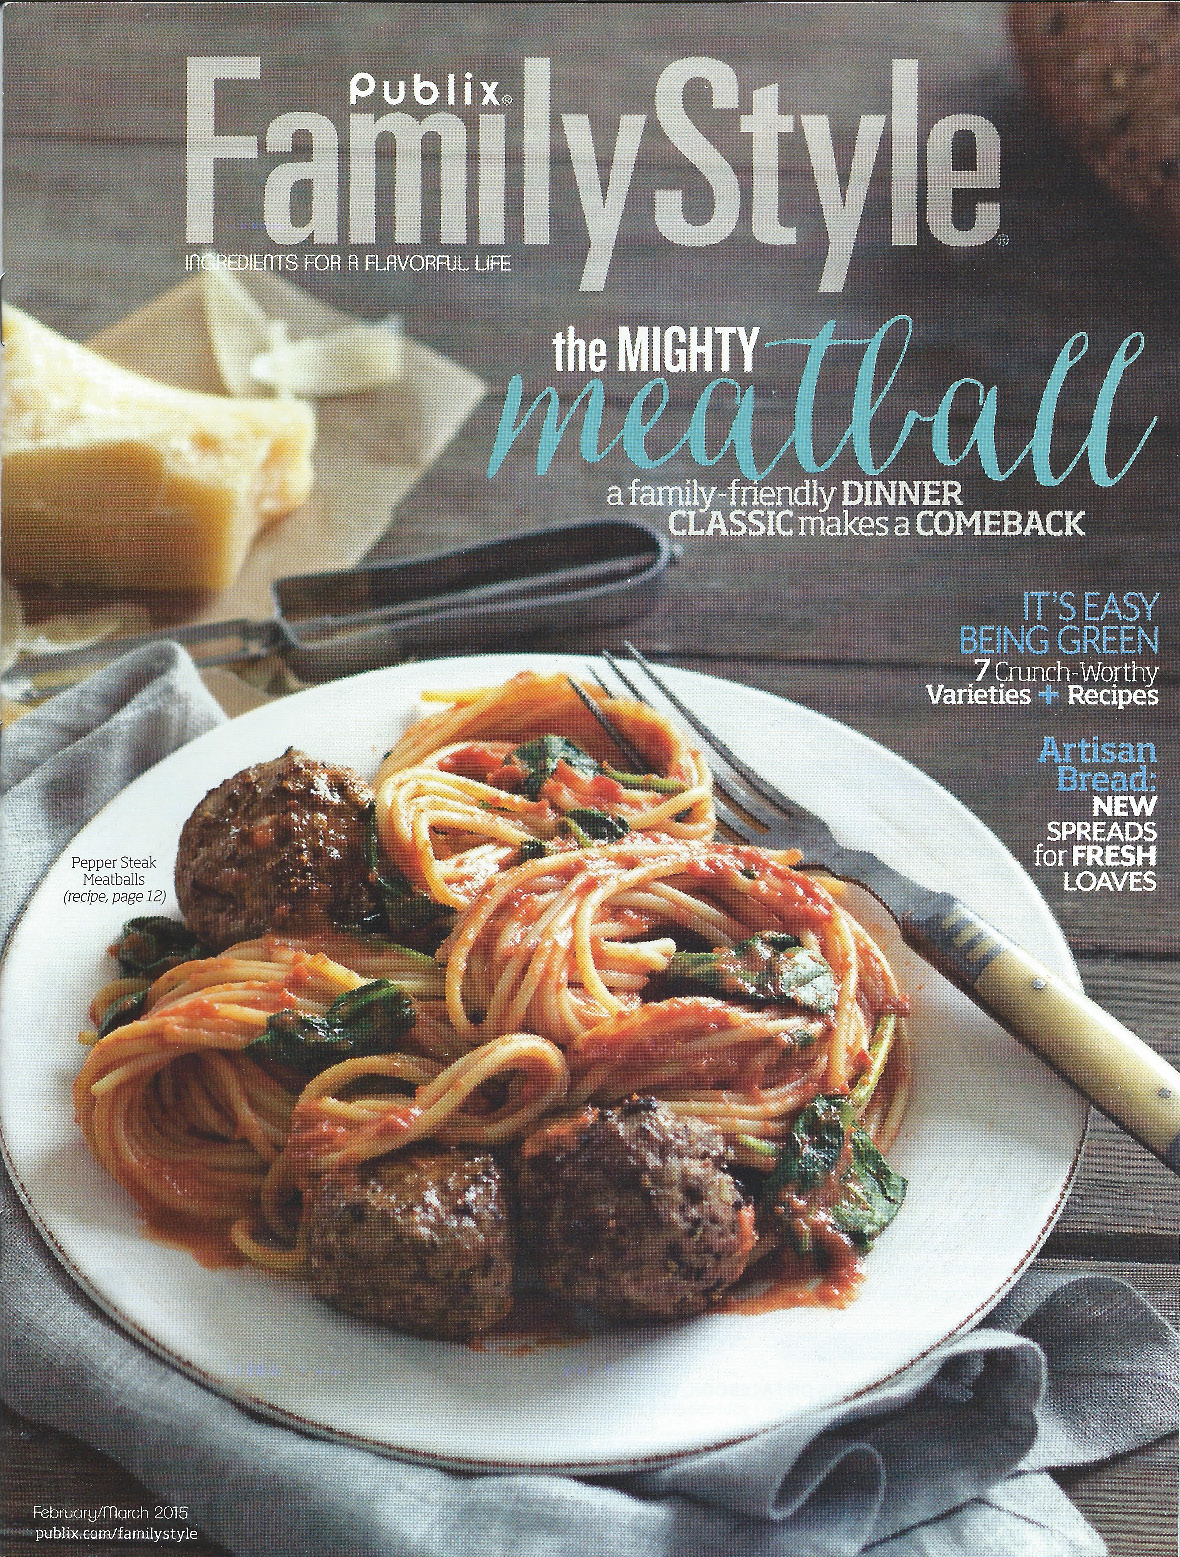 FamilyStyle_Page_2.jpg